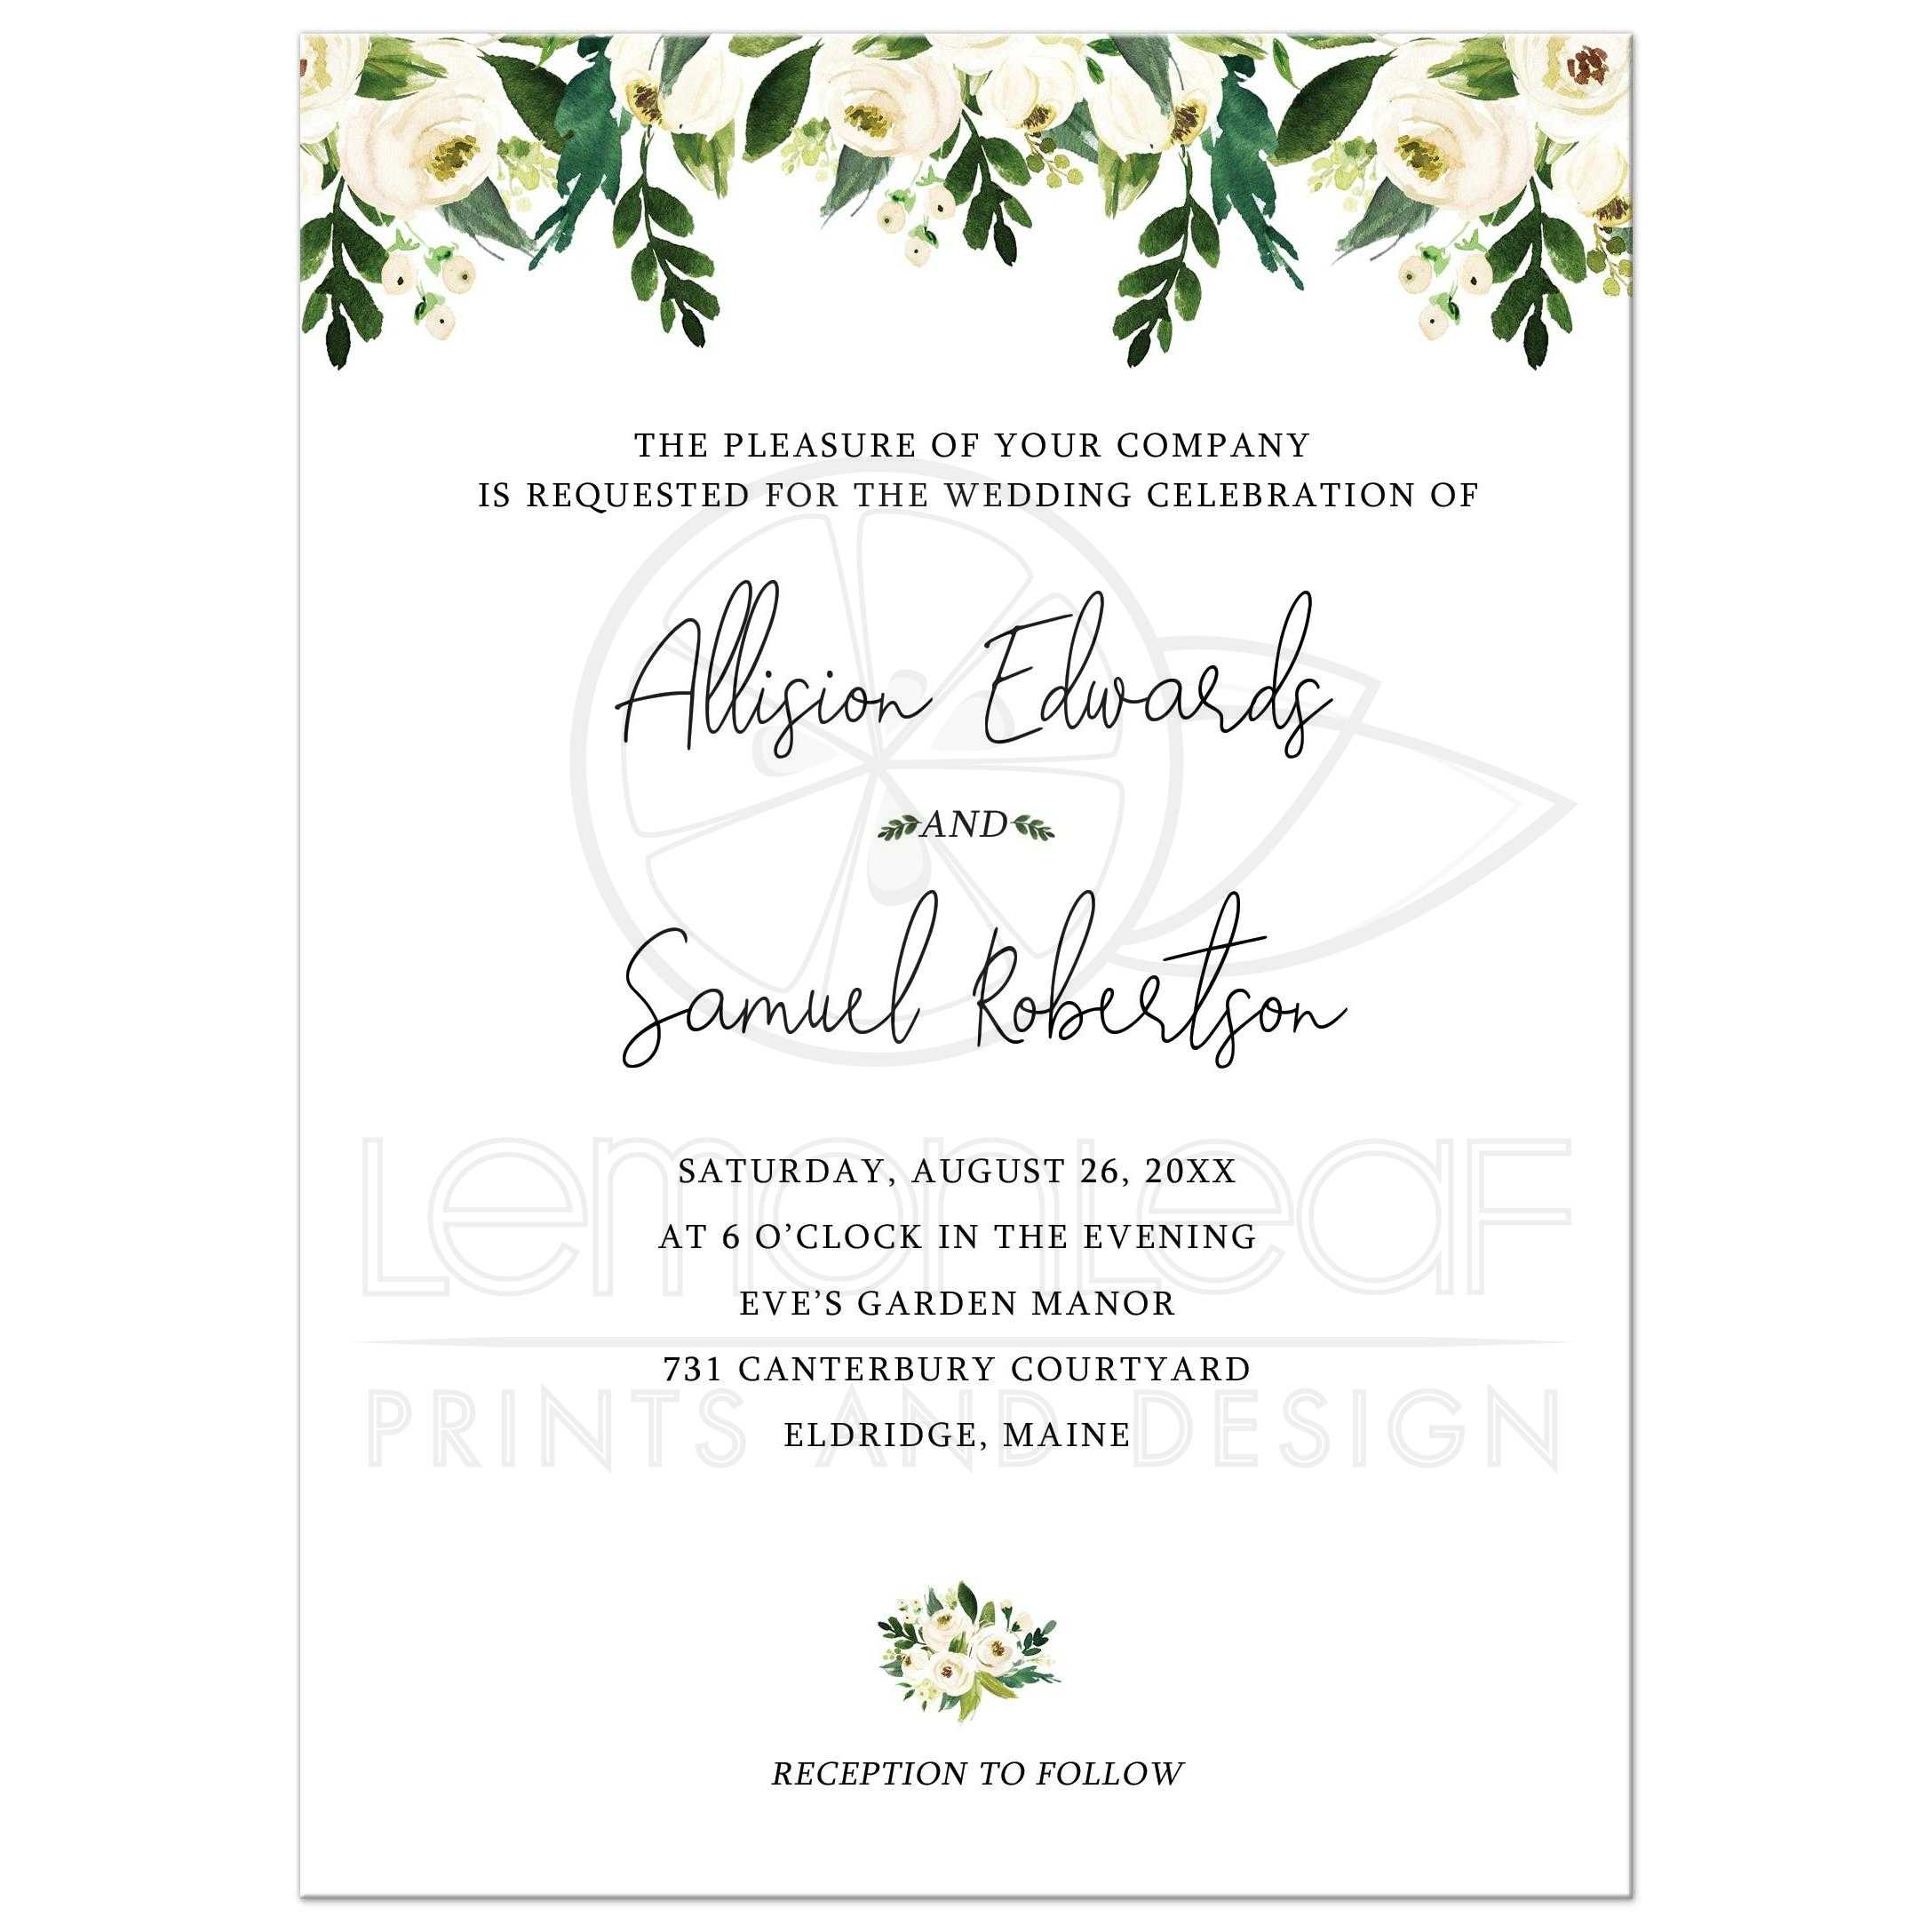 Sending Wedding Invitations Post Office: White Rose Floral Greenery Wedding Invitation